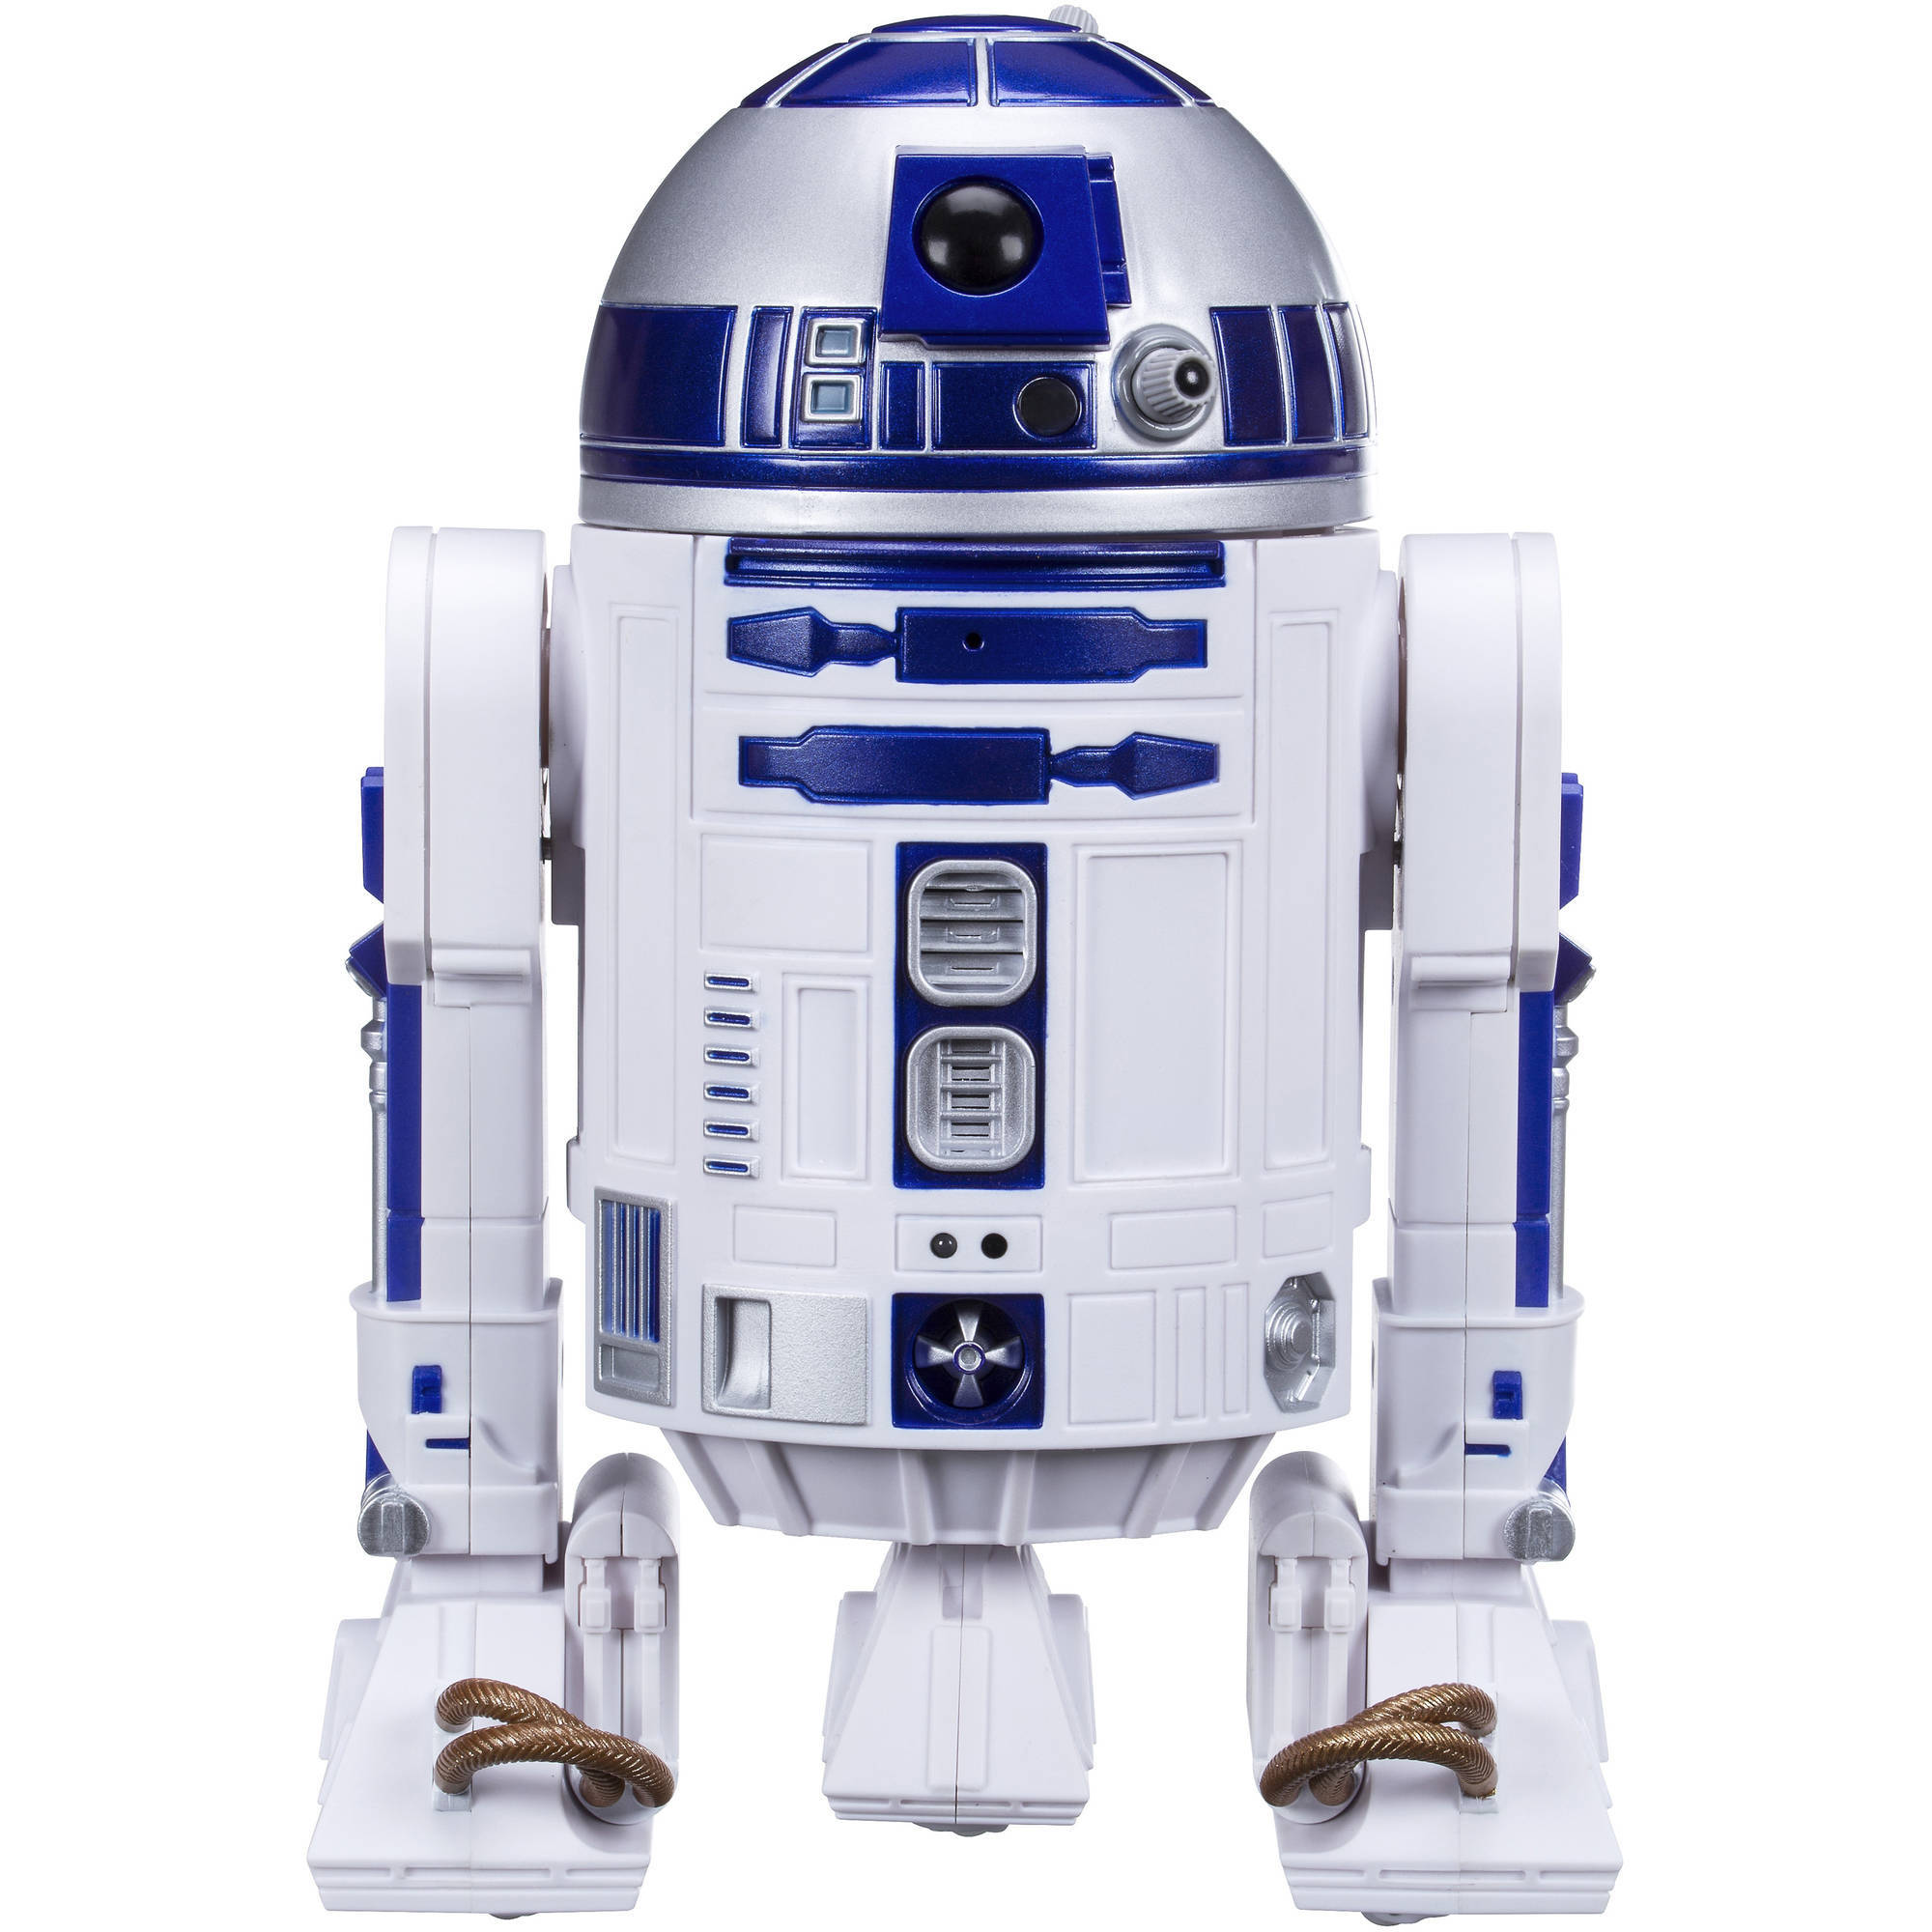 Star Wars Smart R2-D2 Walmart Exclusive